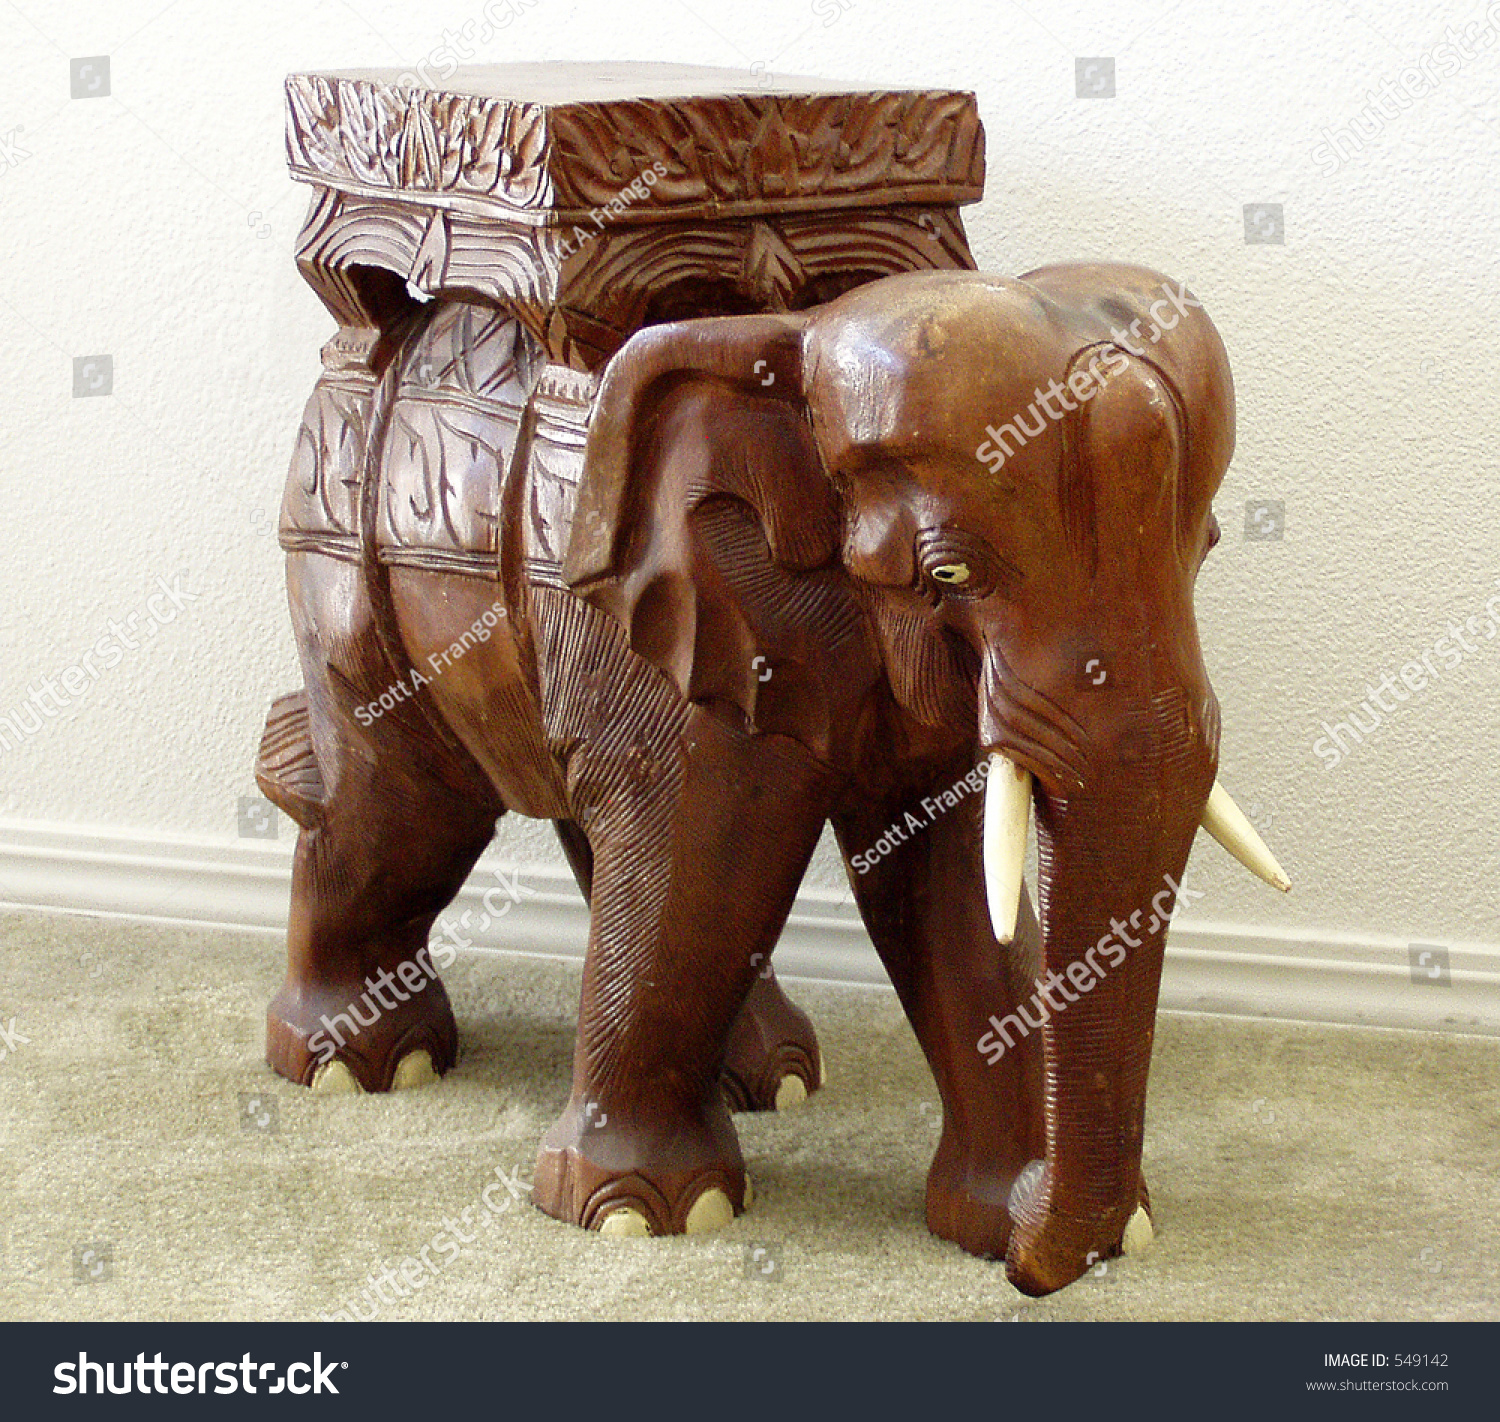 Elephant, Carving, Teak, Stand, Table, Brown, Tusk, India,